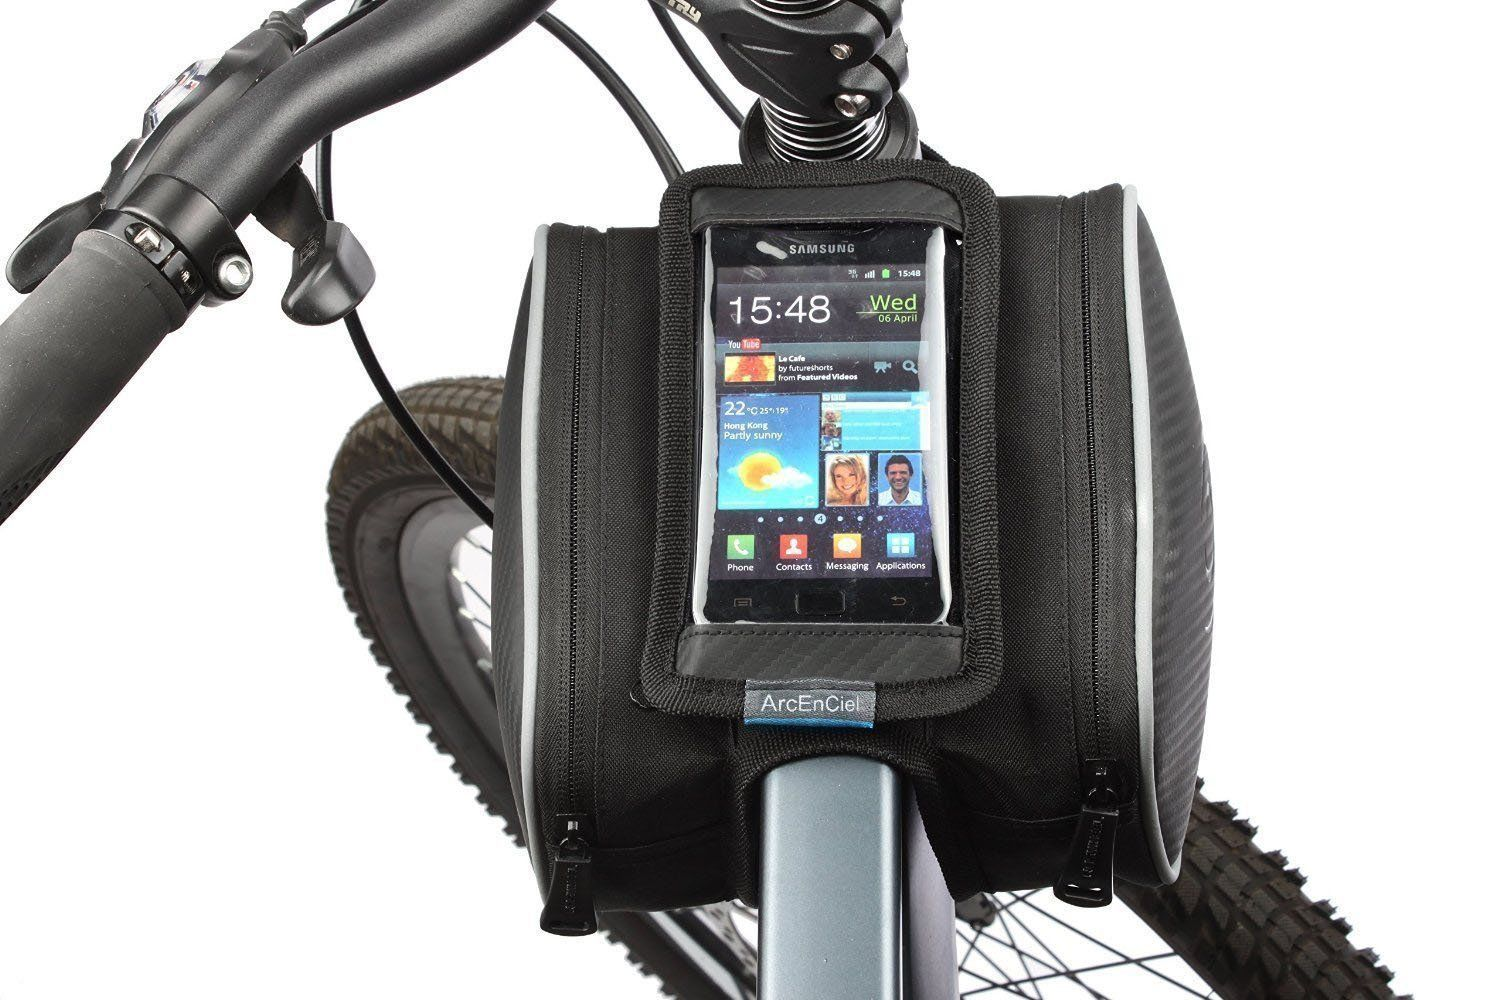 ArcEnCiel® Cycling Frame Bag, head tube bag, Top tube bike phone bag holder for Iphone 6 5s/5c/5 iphone 4/4s, Samsung Galaxy S5/S4/S3 and other cellphone up to 5.7 inches